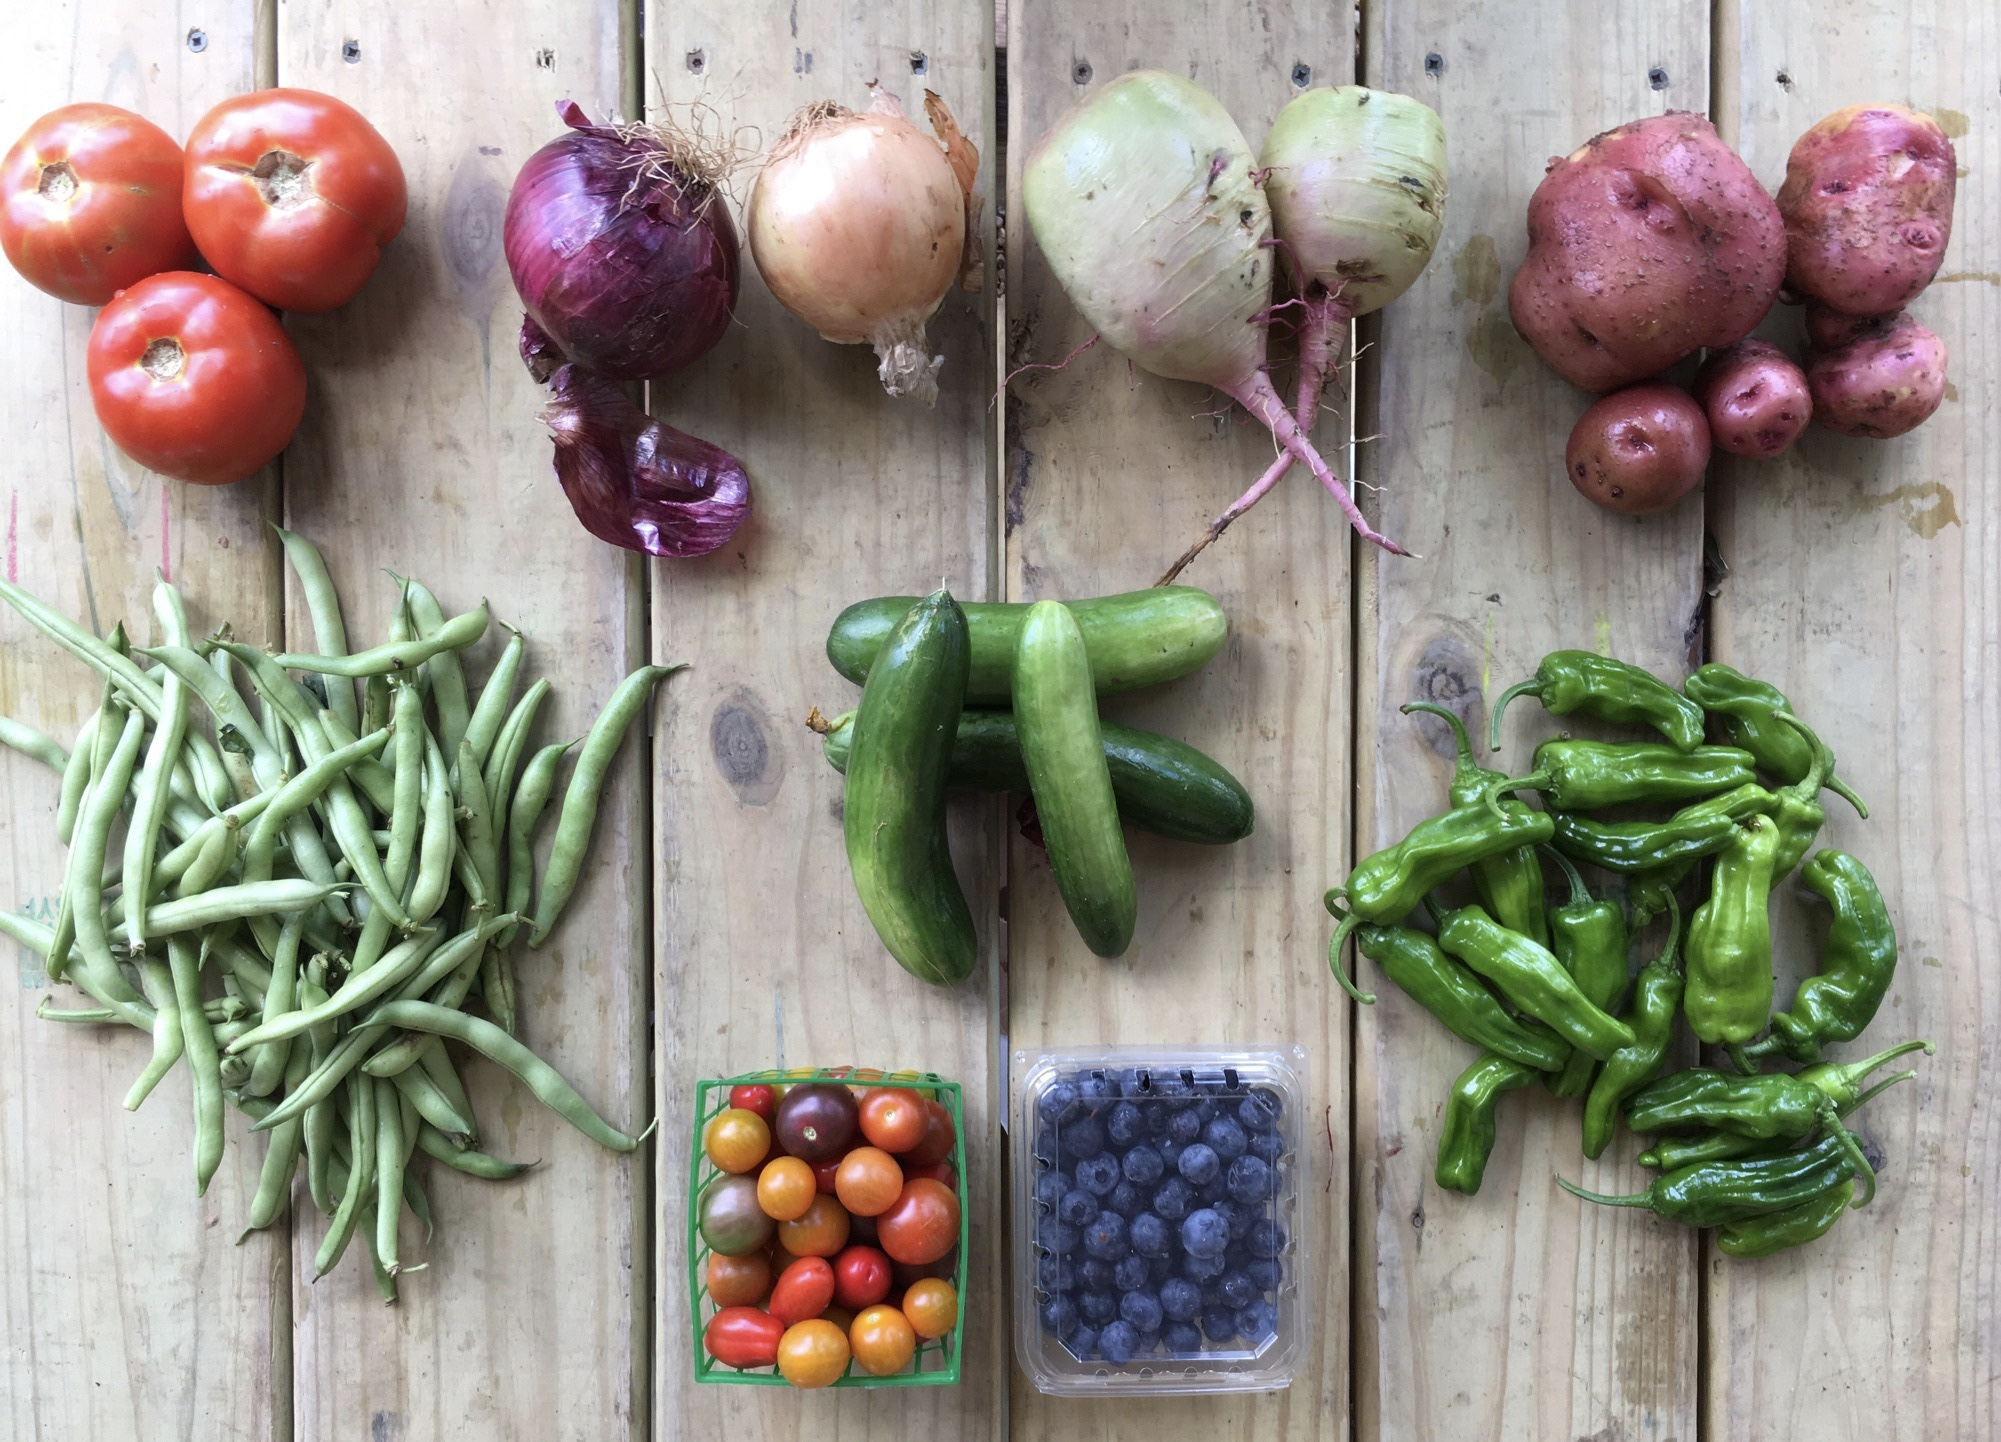 Top Row: Beefsteak Tomatoes, Cured Onions, Watermelon Radishes, and Potatoes.  Bottom Row: Green Beans, Cherry Tomatoes, Blueberries, and Shishitos.